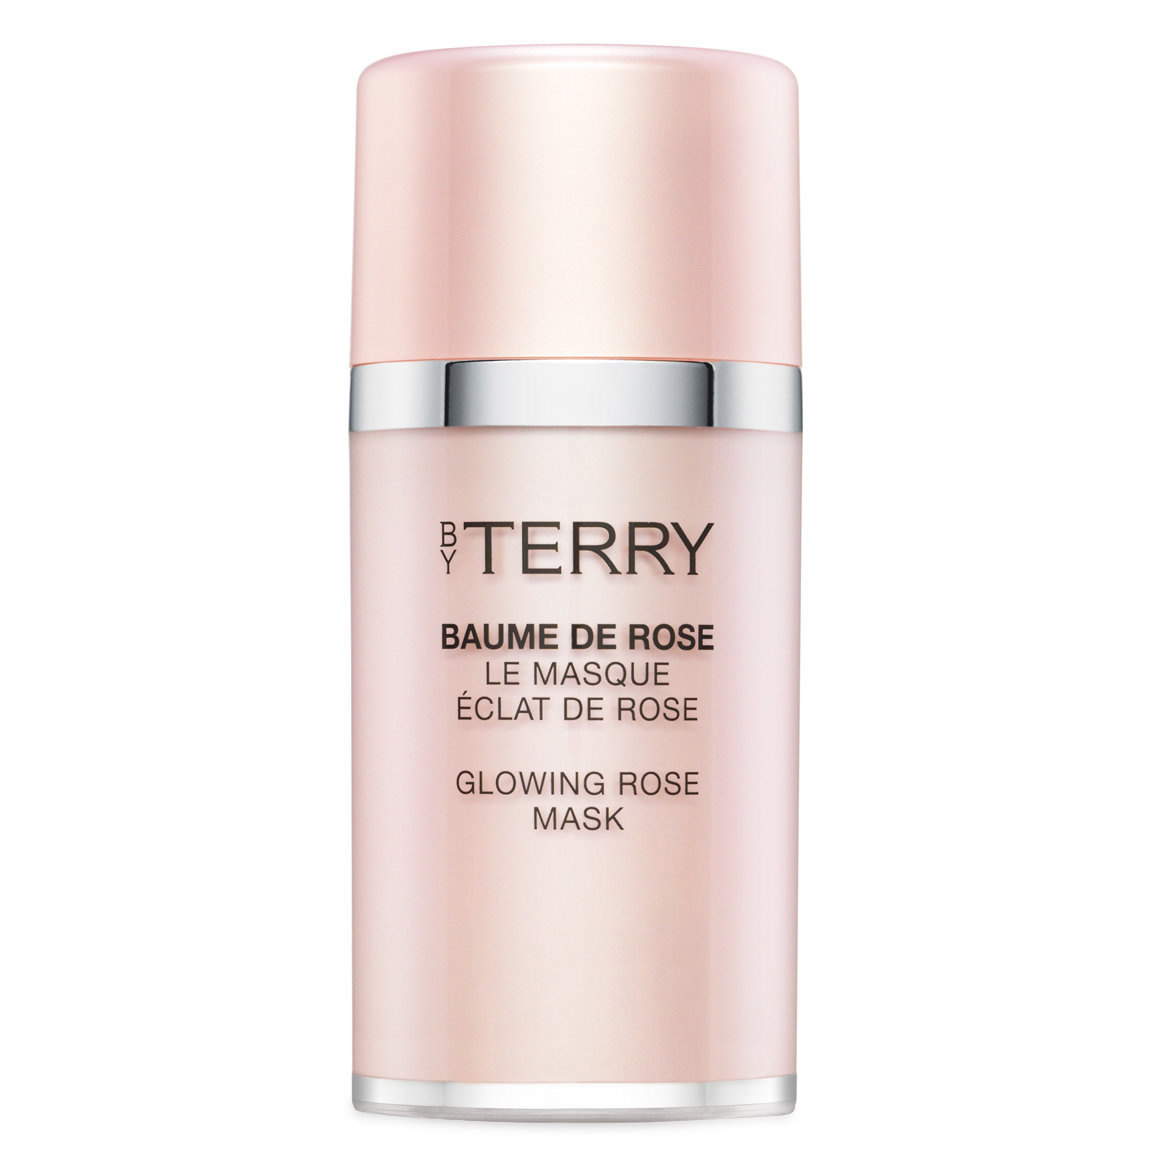 BY TERRY Baume de Rose Glowing Mask alternative view 1 - product swatch.